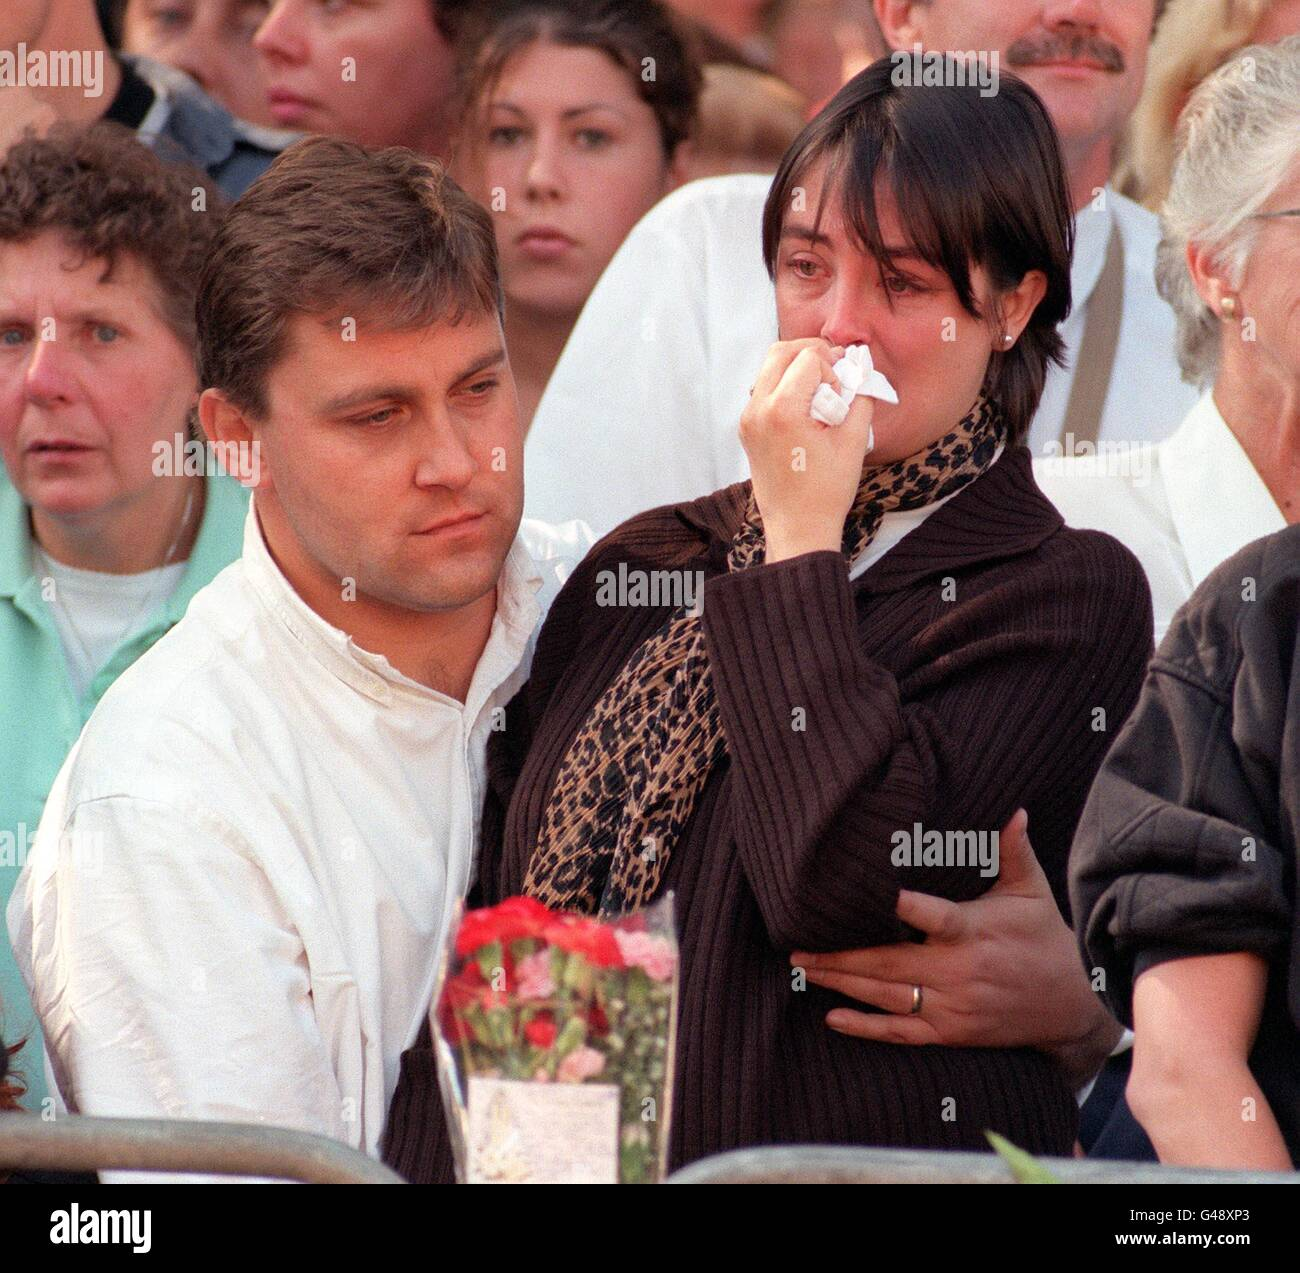 Mourners At Funeral Procession Of Princess Diana Stock Photo Alamy